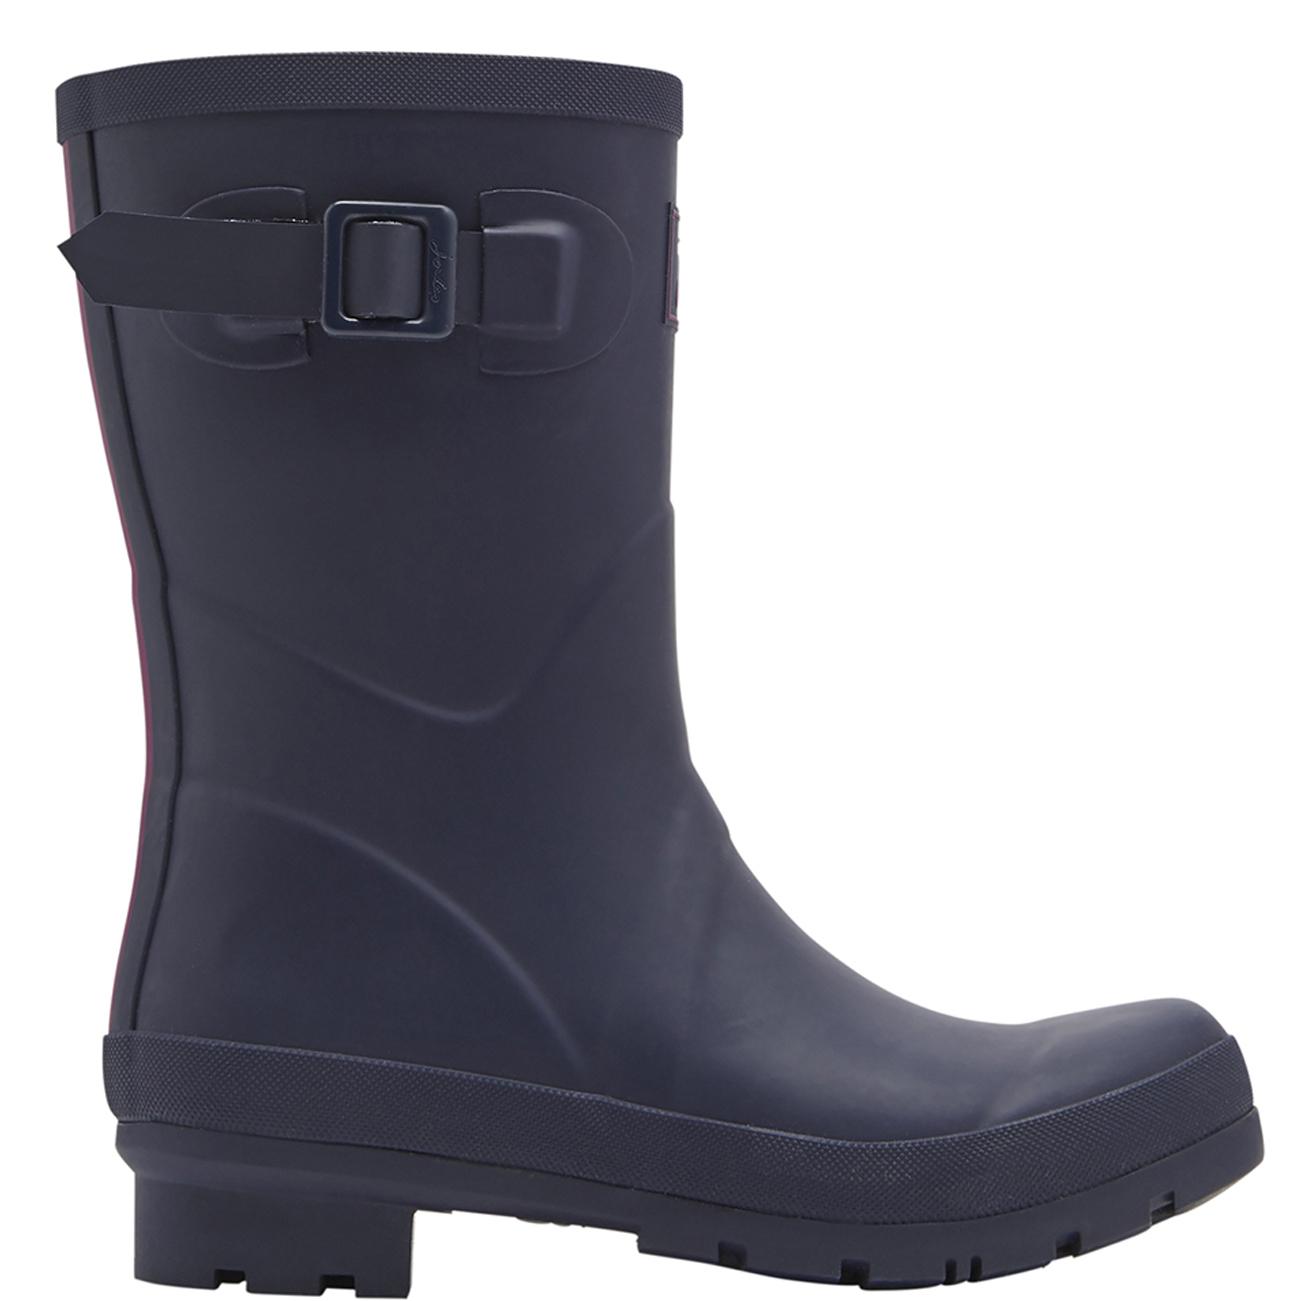 Damen Joules Kelly Mid Height Stiefel Wellies Winter Schnee Wasserdicht Stiefel Height EU 36-42 bb9a85